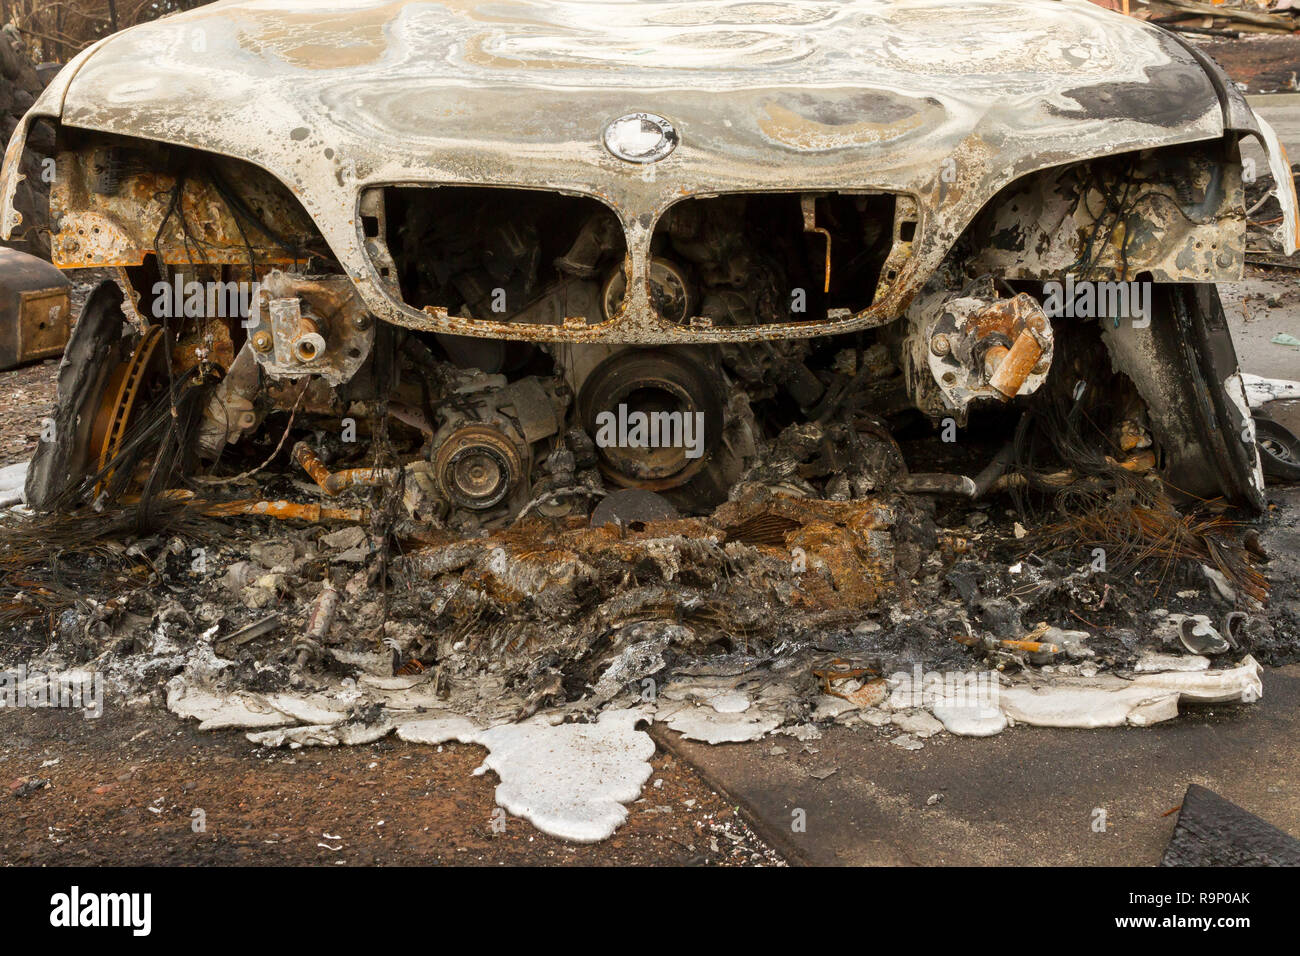 Melted Sportscar - These images were captured in neighborhoods near Santa Rosa, California, where wildfires in early October 2017. - Stock Image